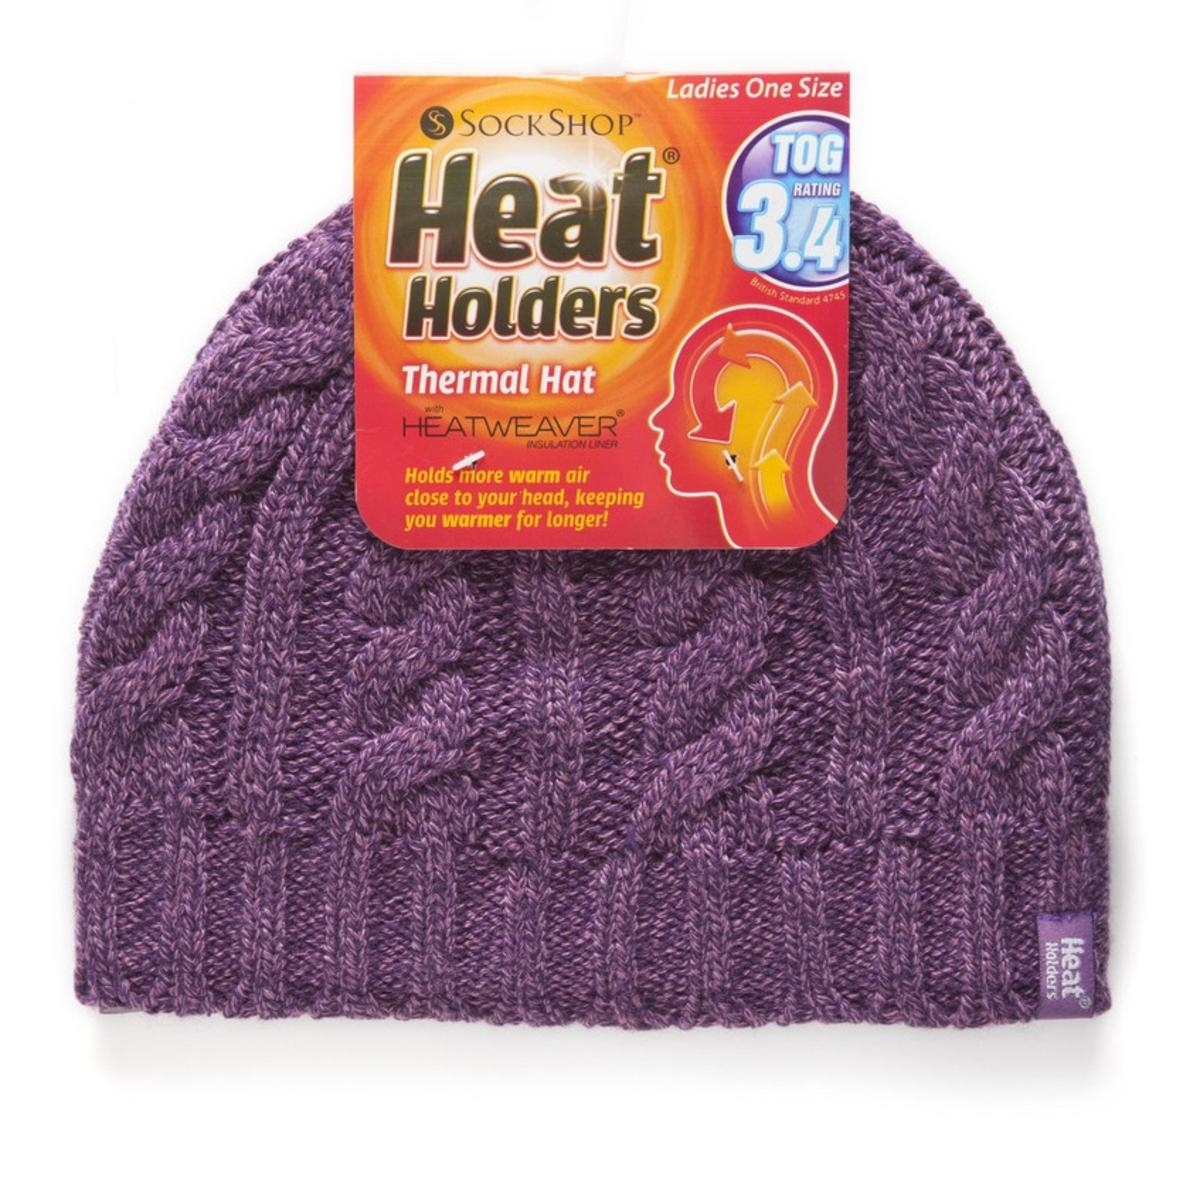 Heat Holders Women s Thermal Hat - The Warming Store 1be95a77914